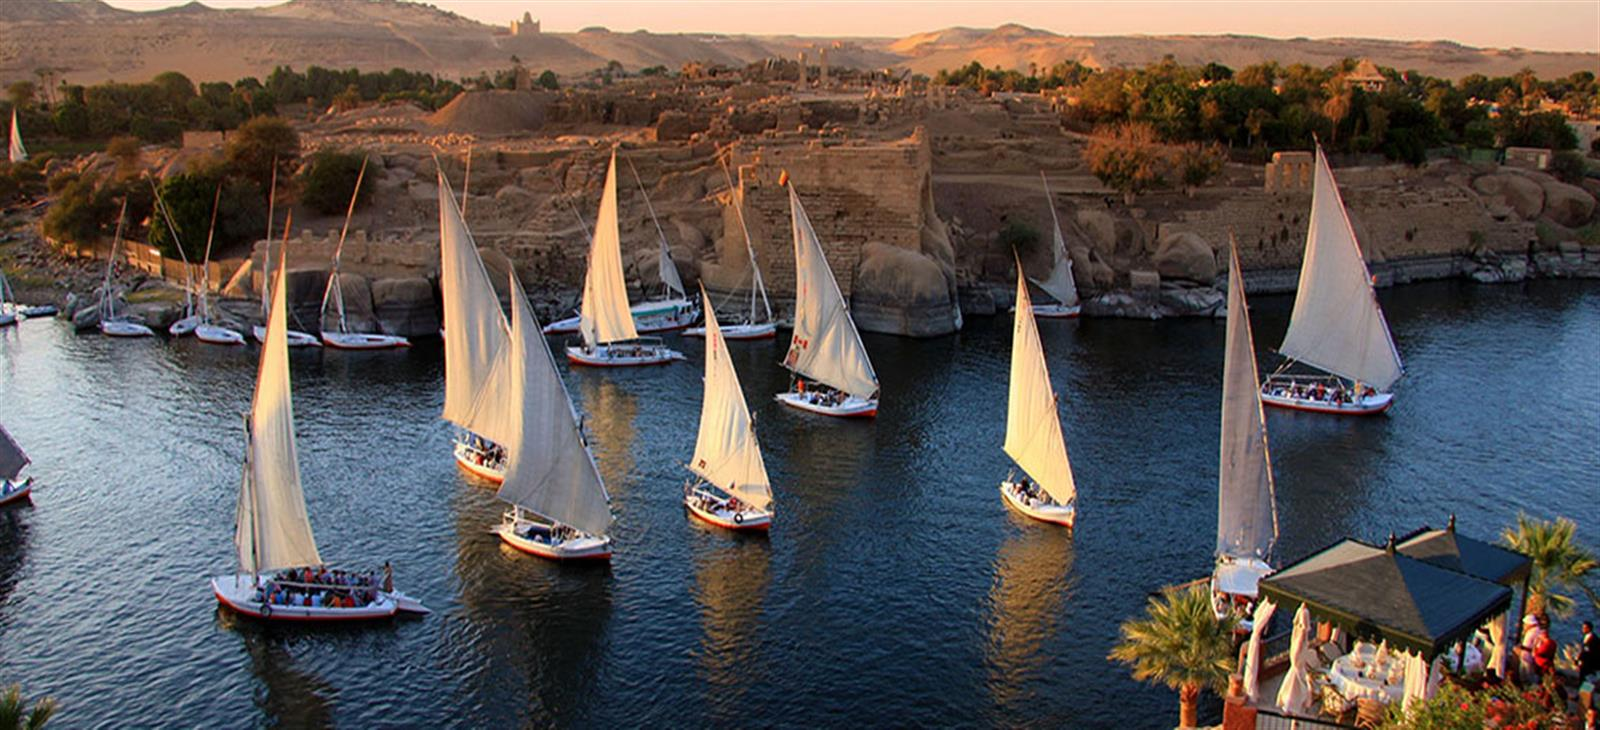 aswan tour from marsa allam